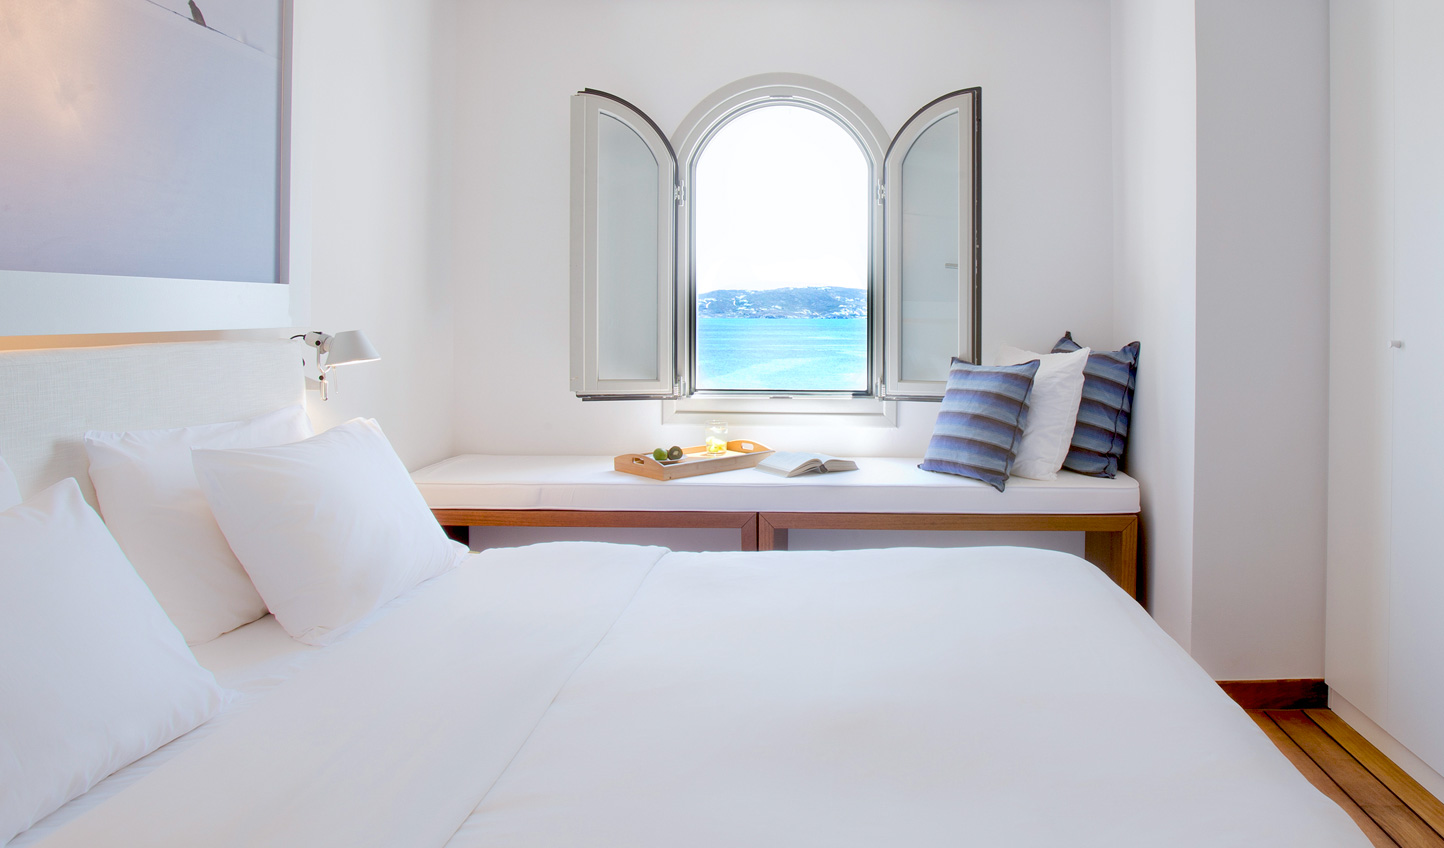 Wake up to views of endless azure waters